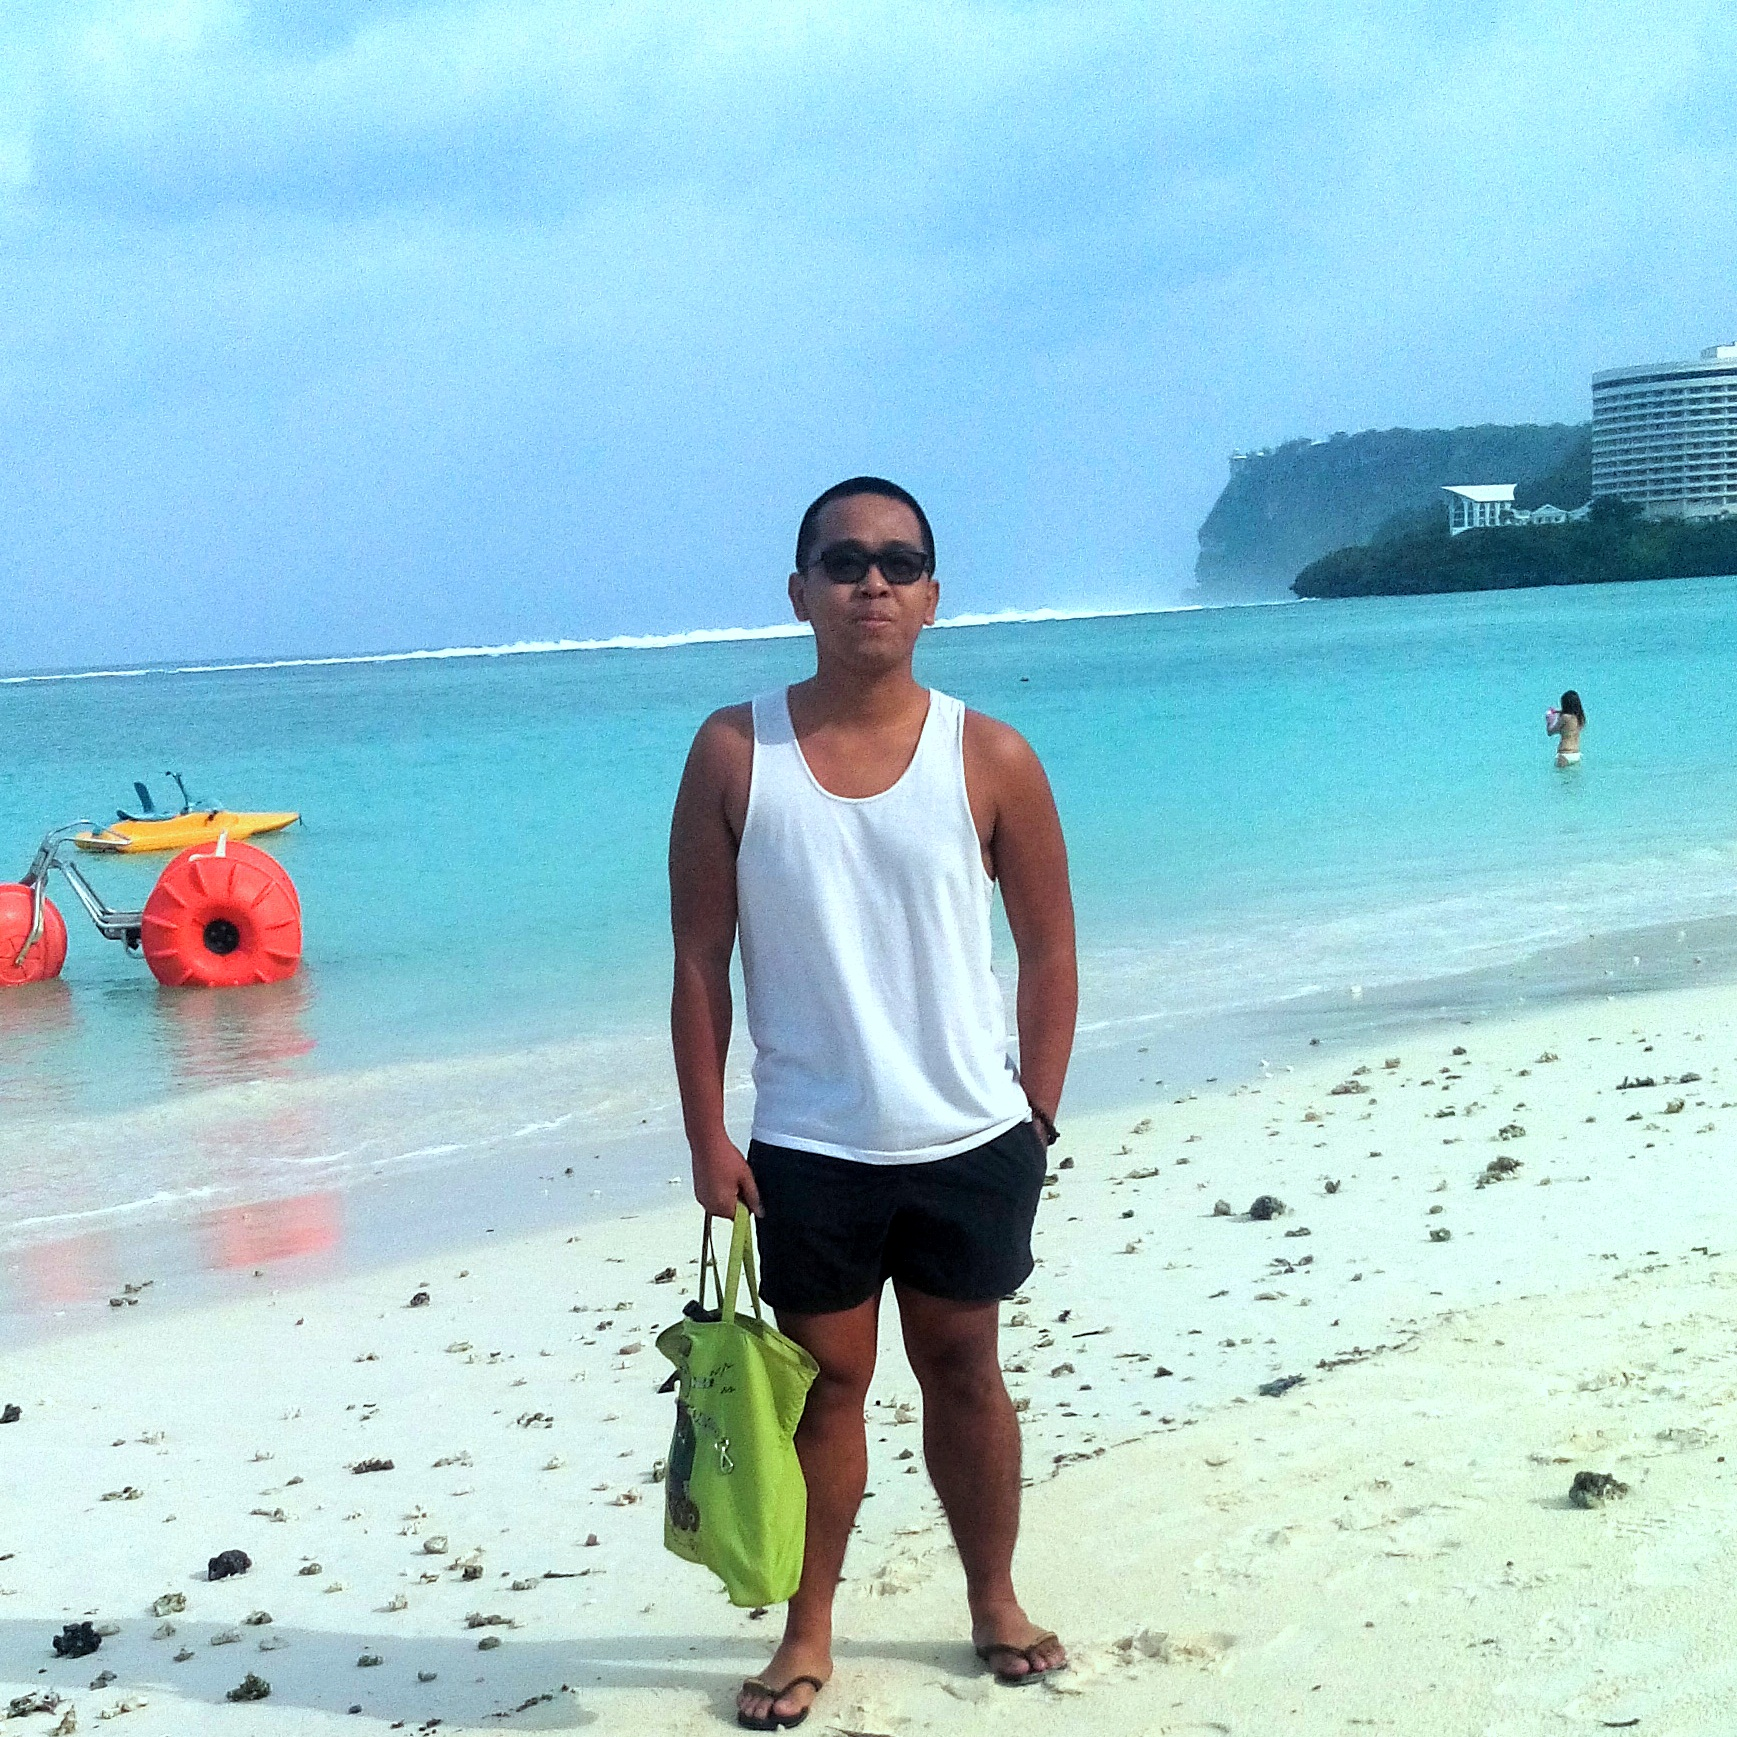 I can finally swim! Hey Tumon Bay